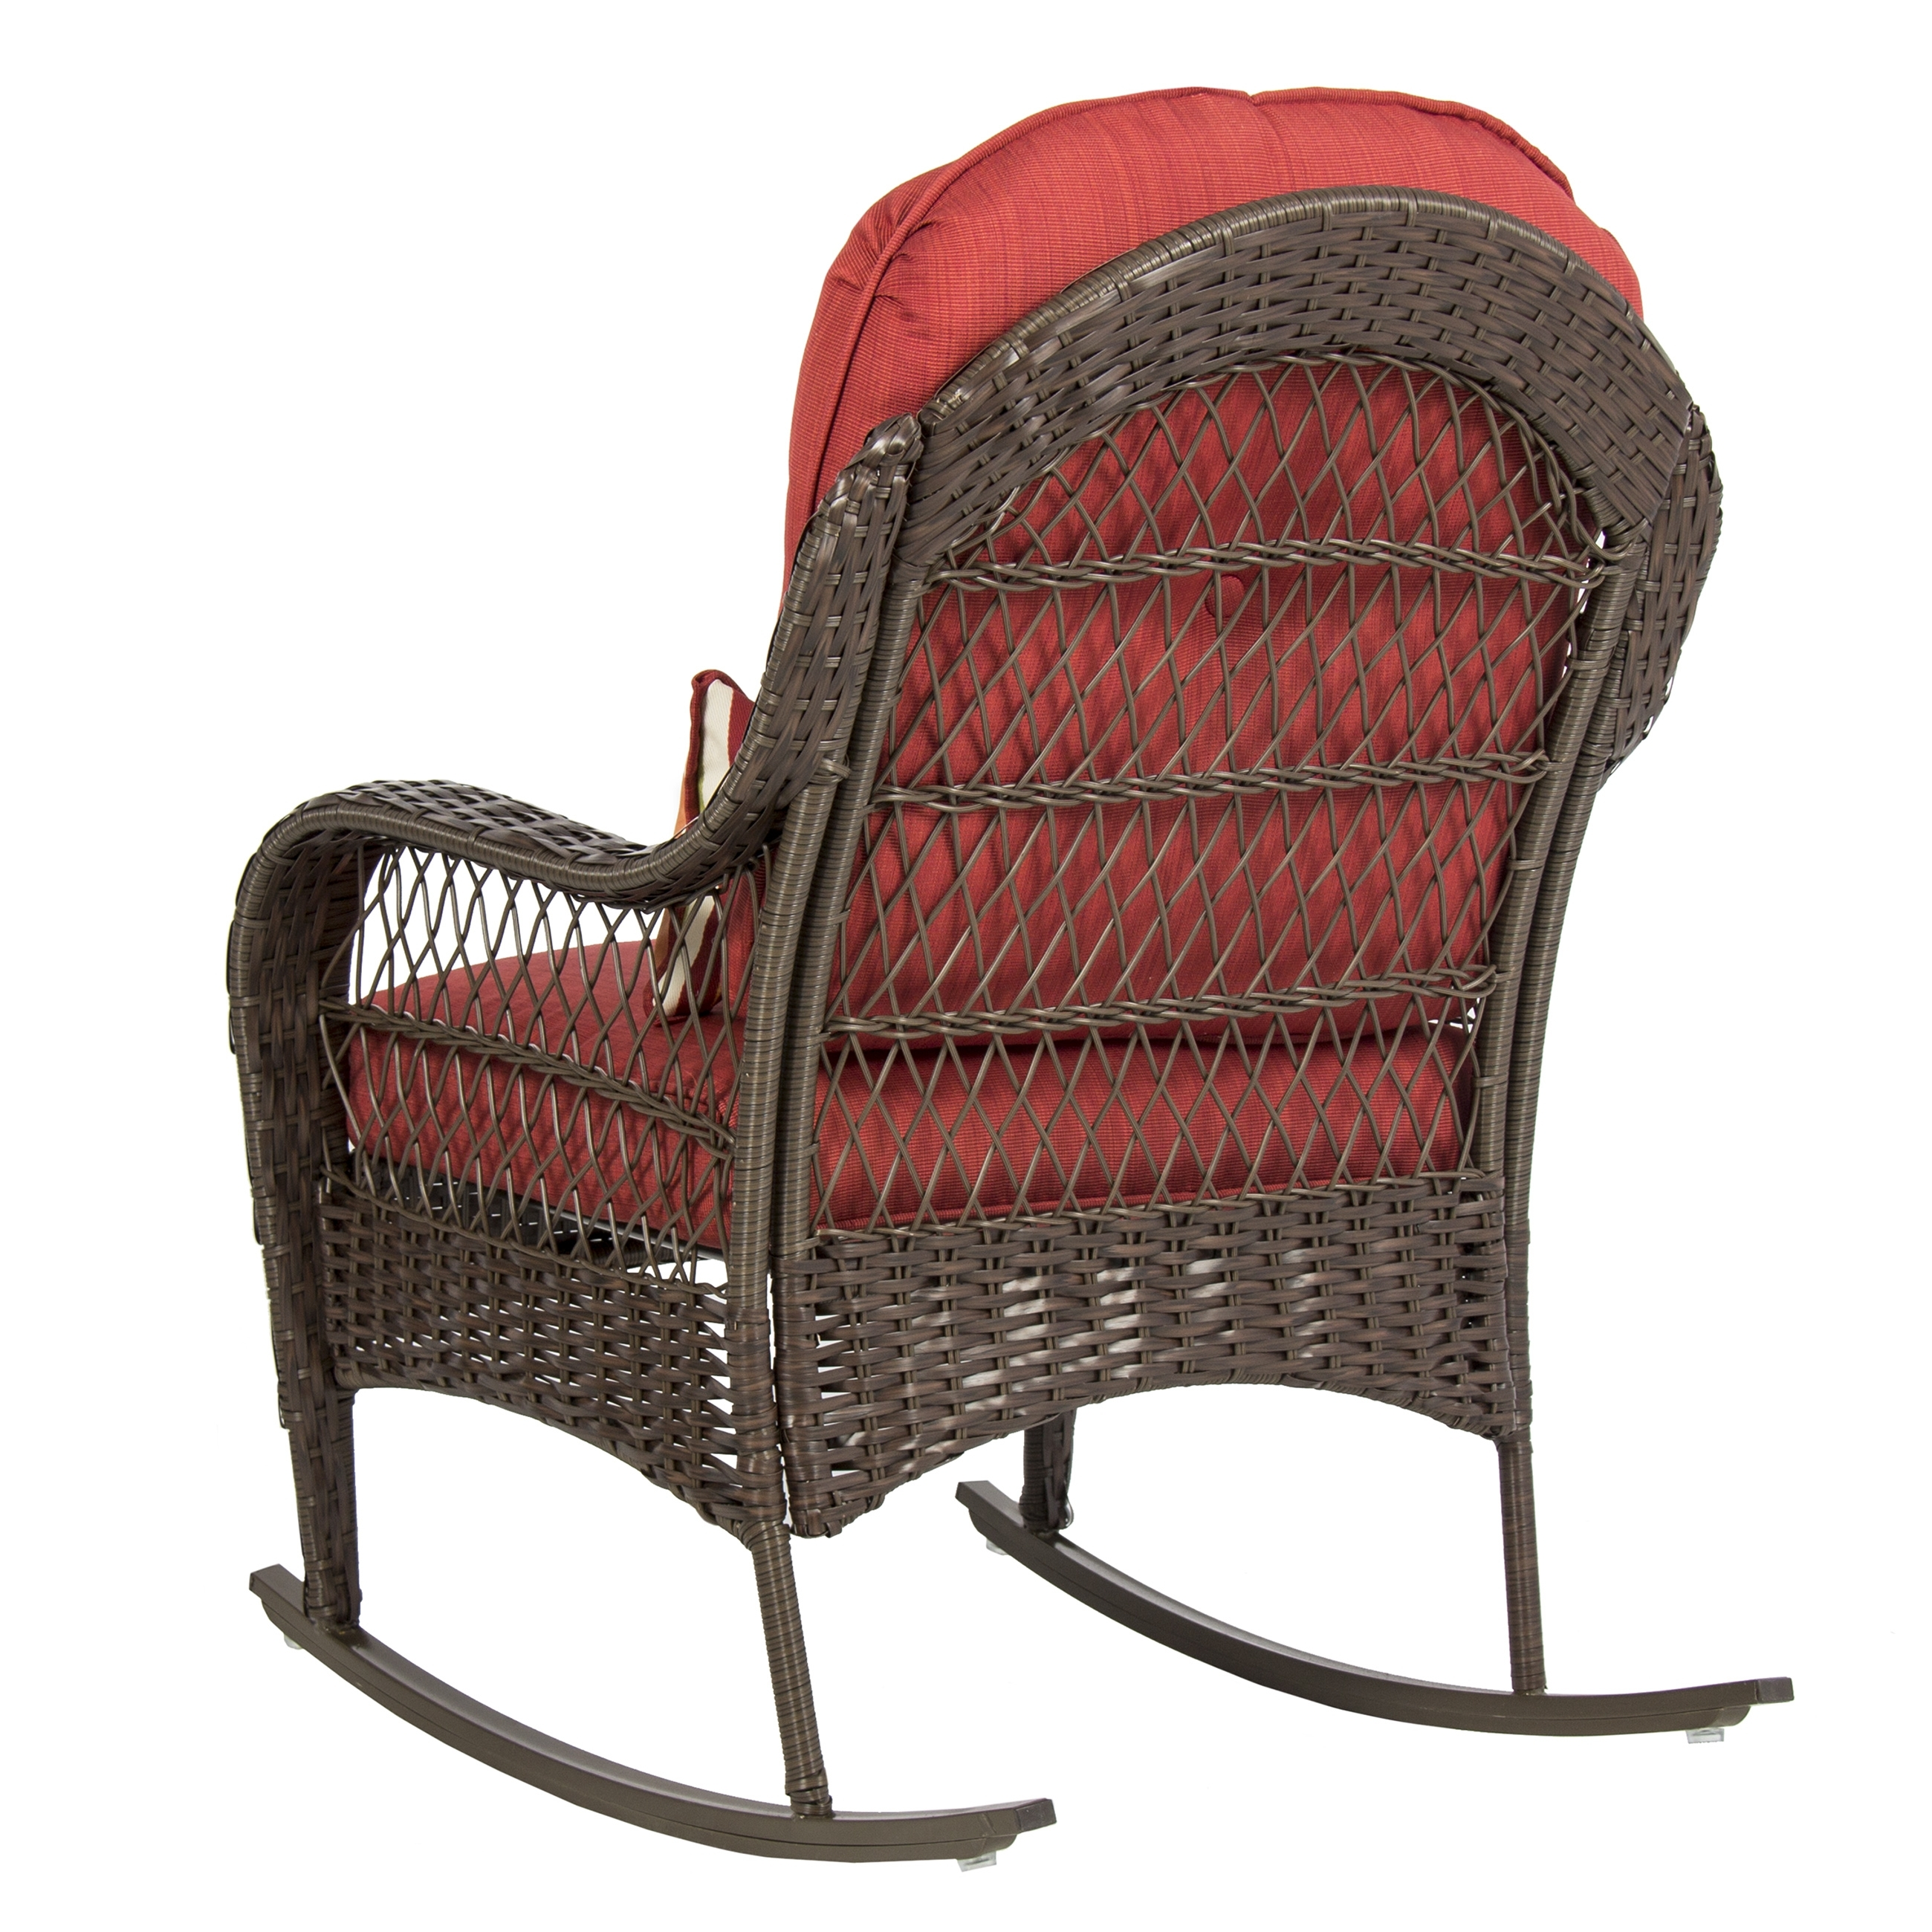 Best Choice Products Wicker Rocking Chair Patio Porch Deck Furniture For Favorite Outdoor Wicker Rocking Chairs With Cushions (View 11 of 15)